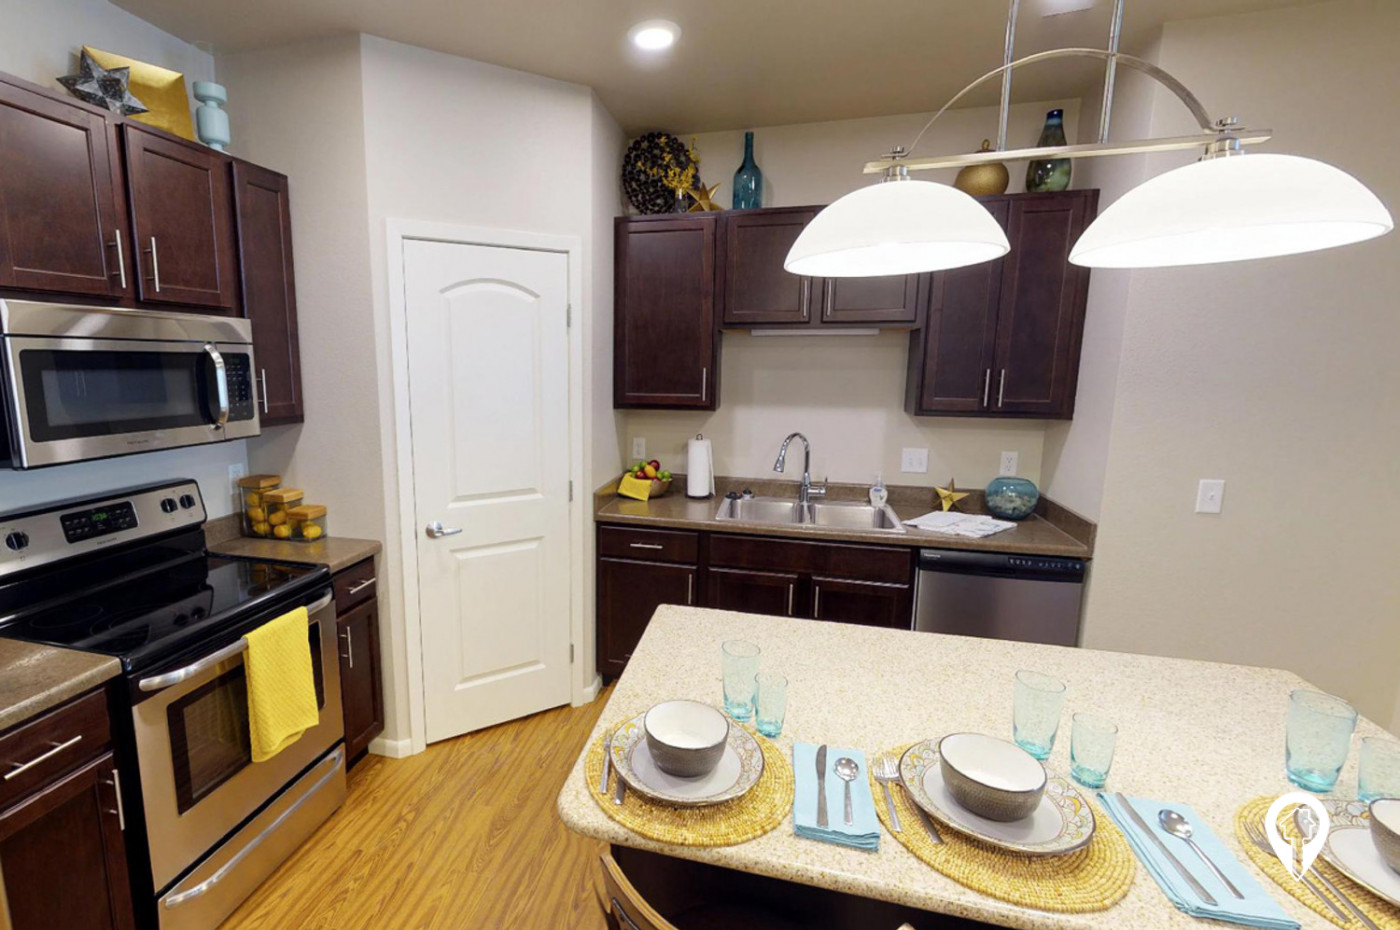 Chateau-Apartment-Homes-Great-Kitchen-Layouts-Include-Granite-Countertops-Island-Stainless-Steel